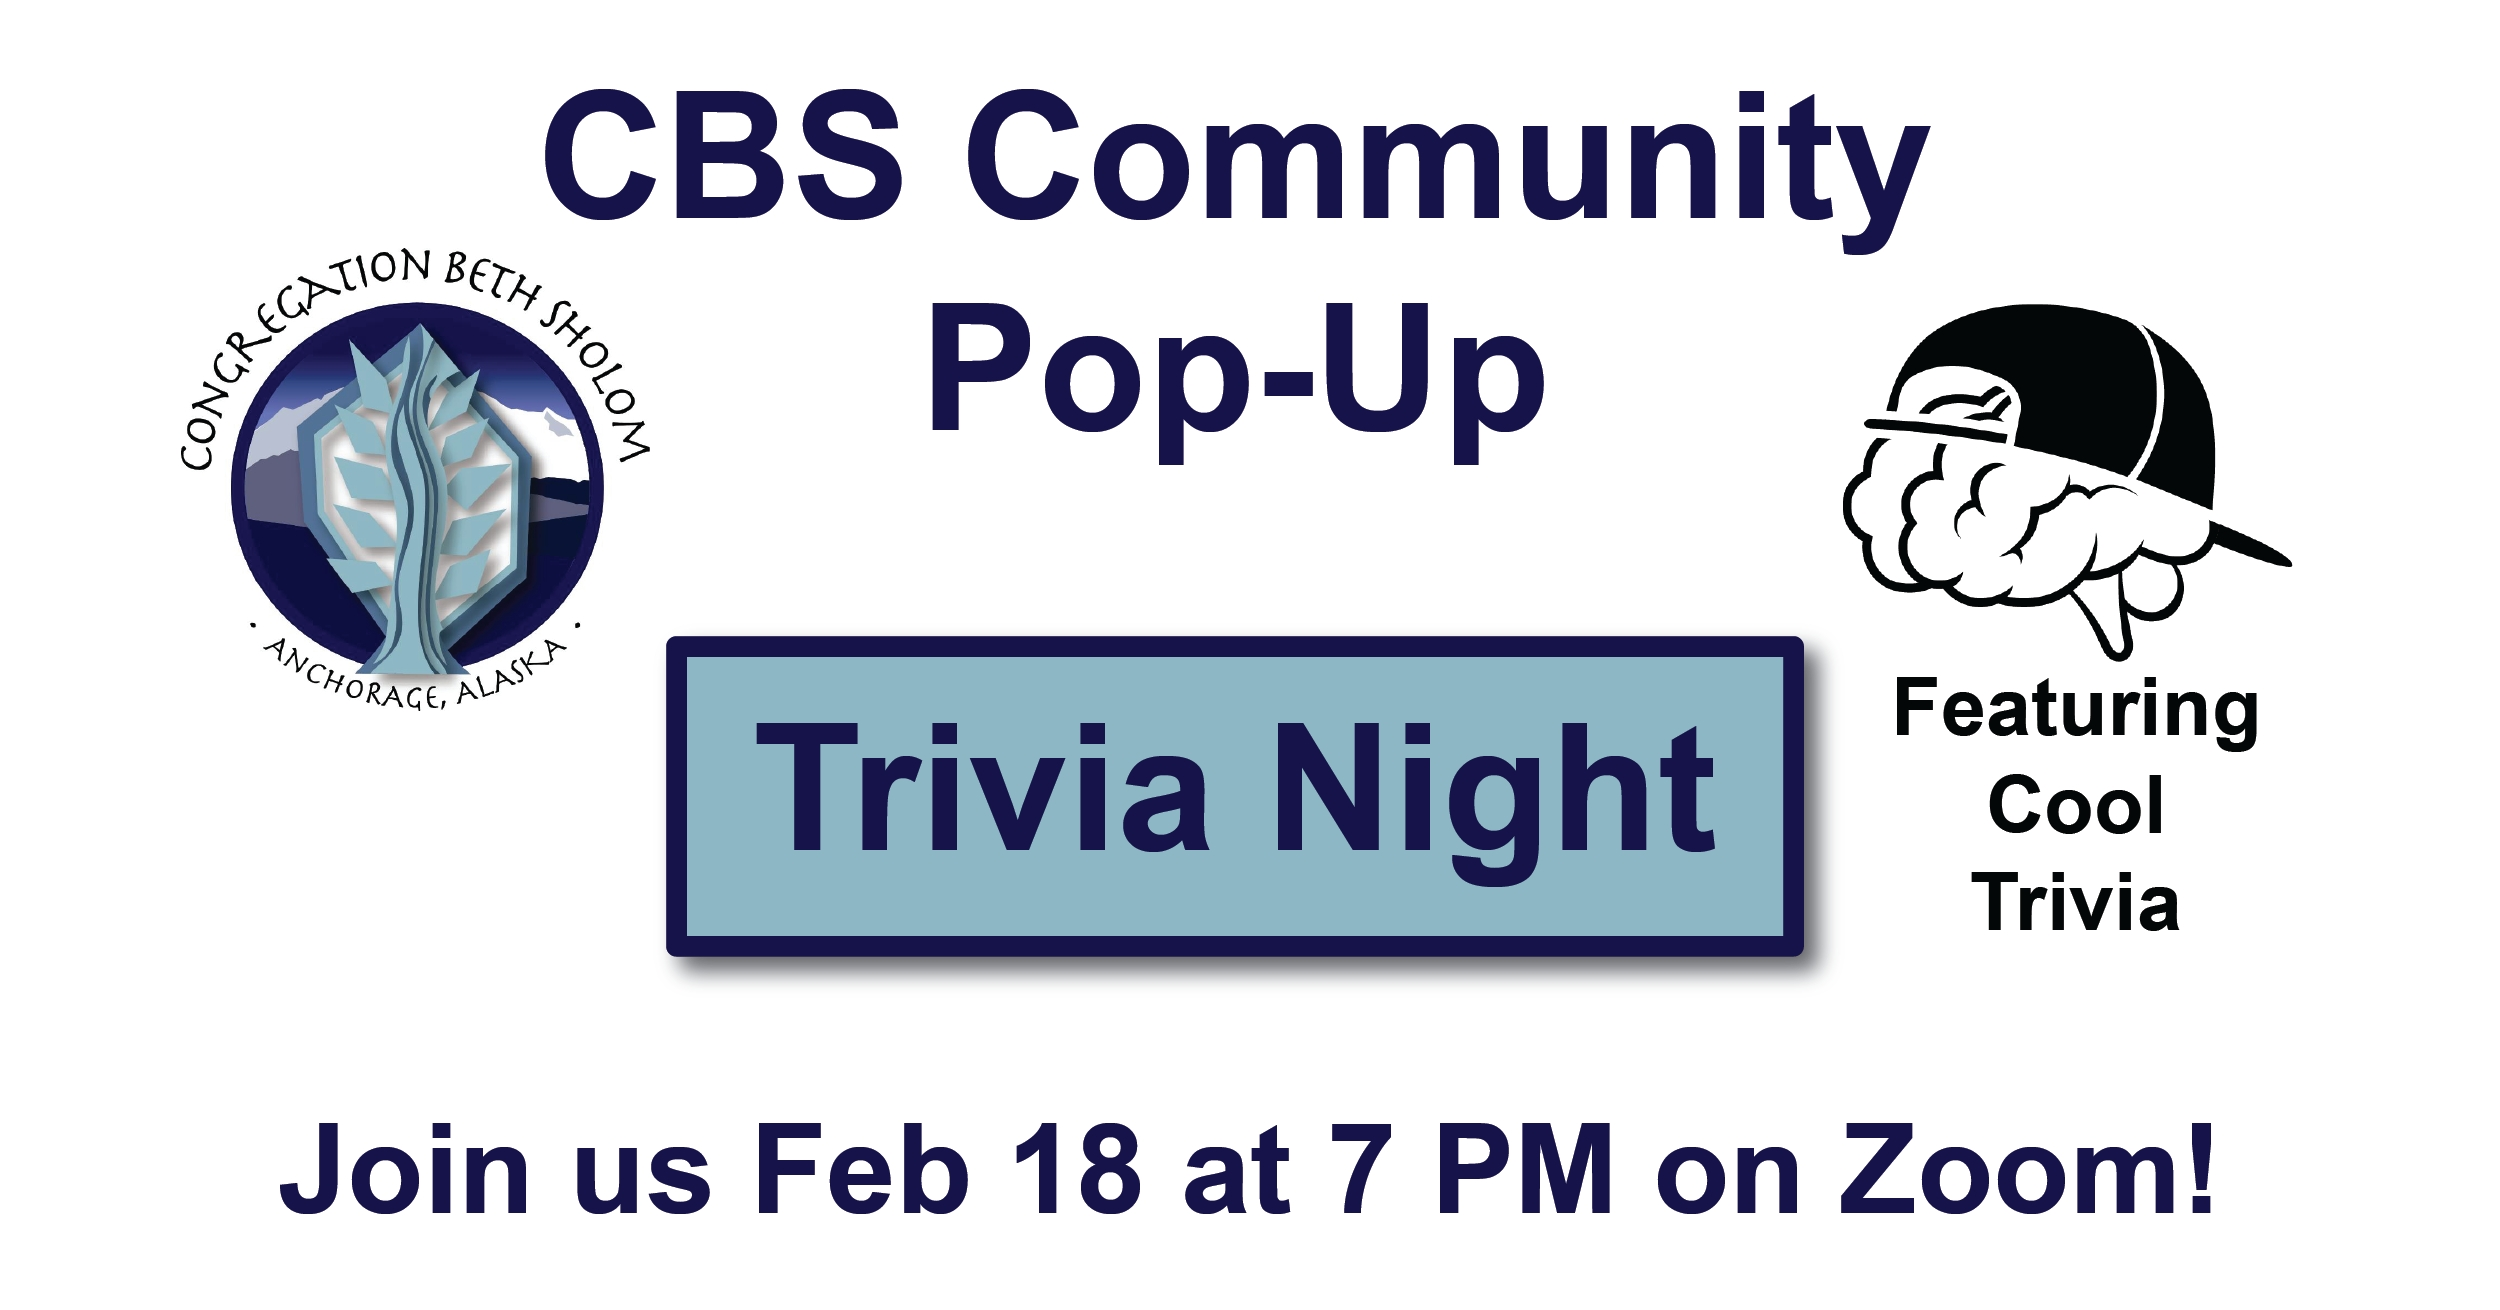 Banner Image for CBS Community Pop-Up Trivia Night